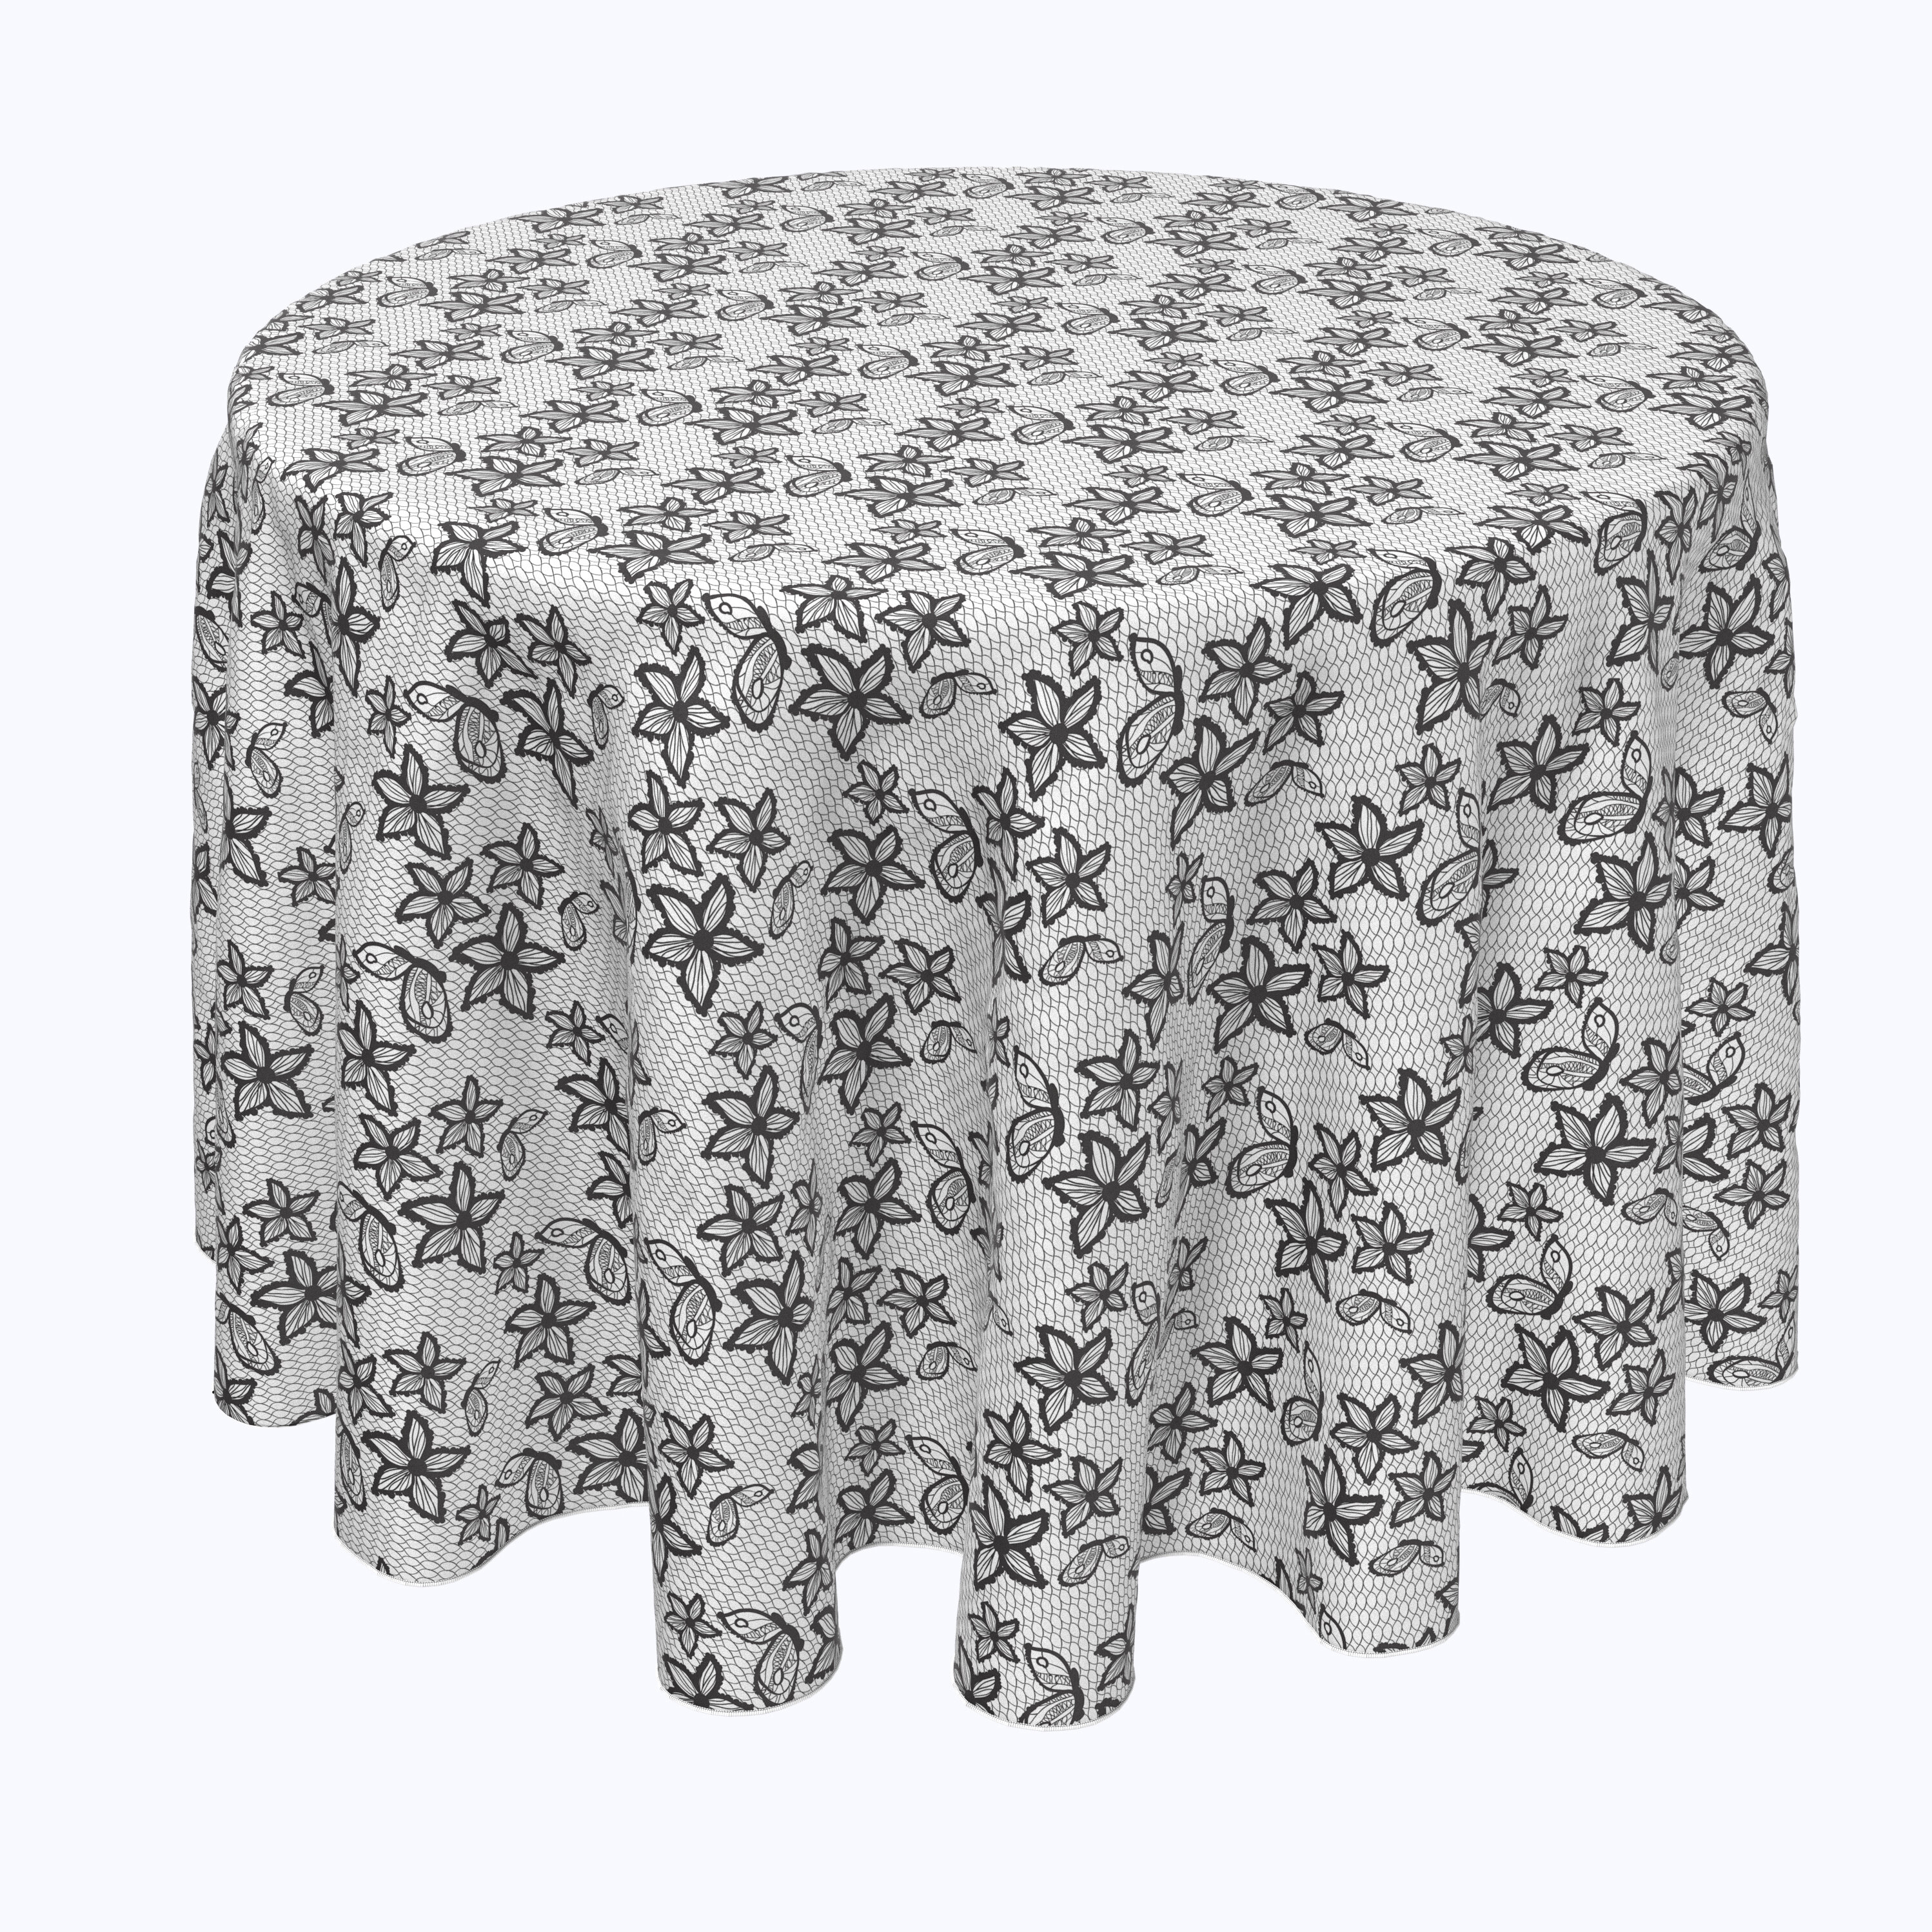 90 X 70 Gray Table Linens You Ll Love In 2021 Wayfair